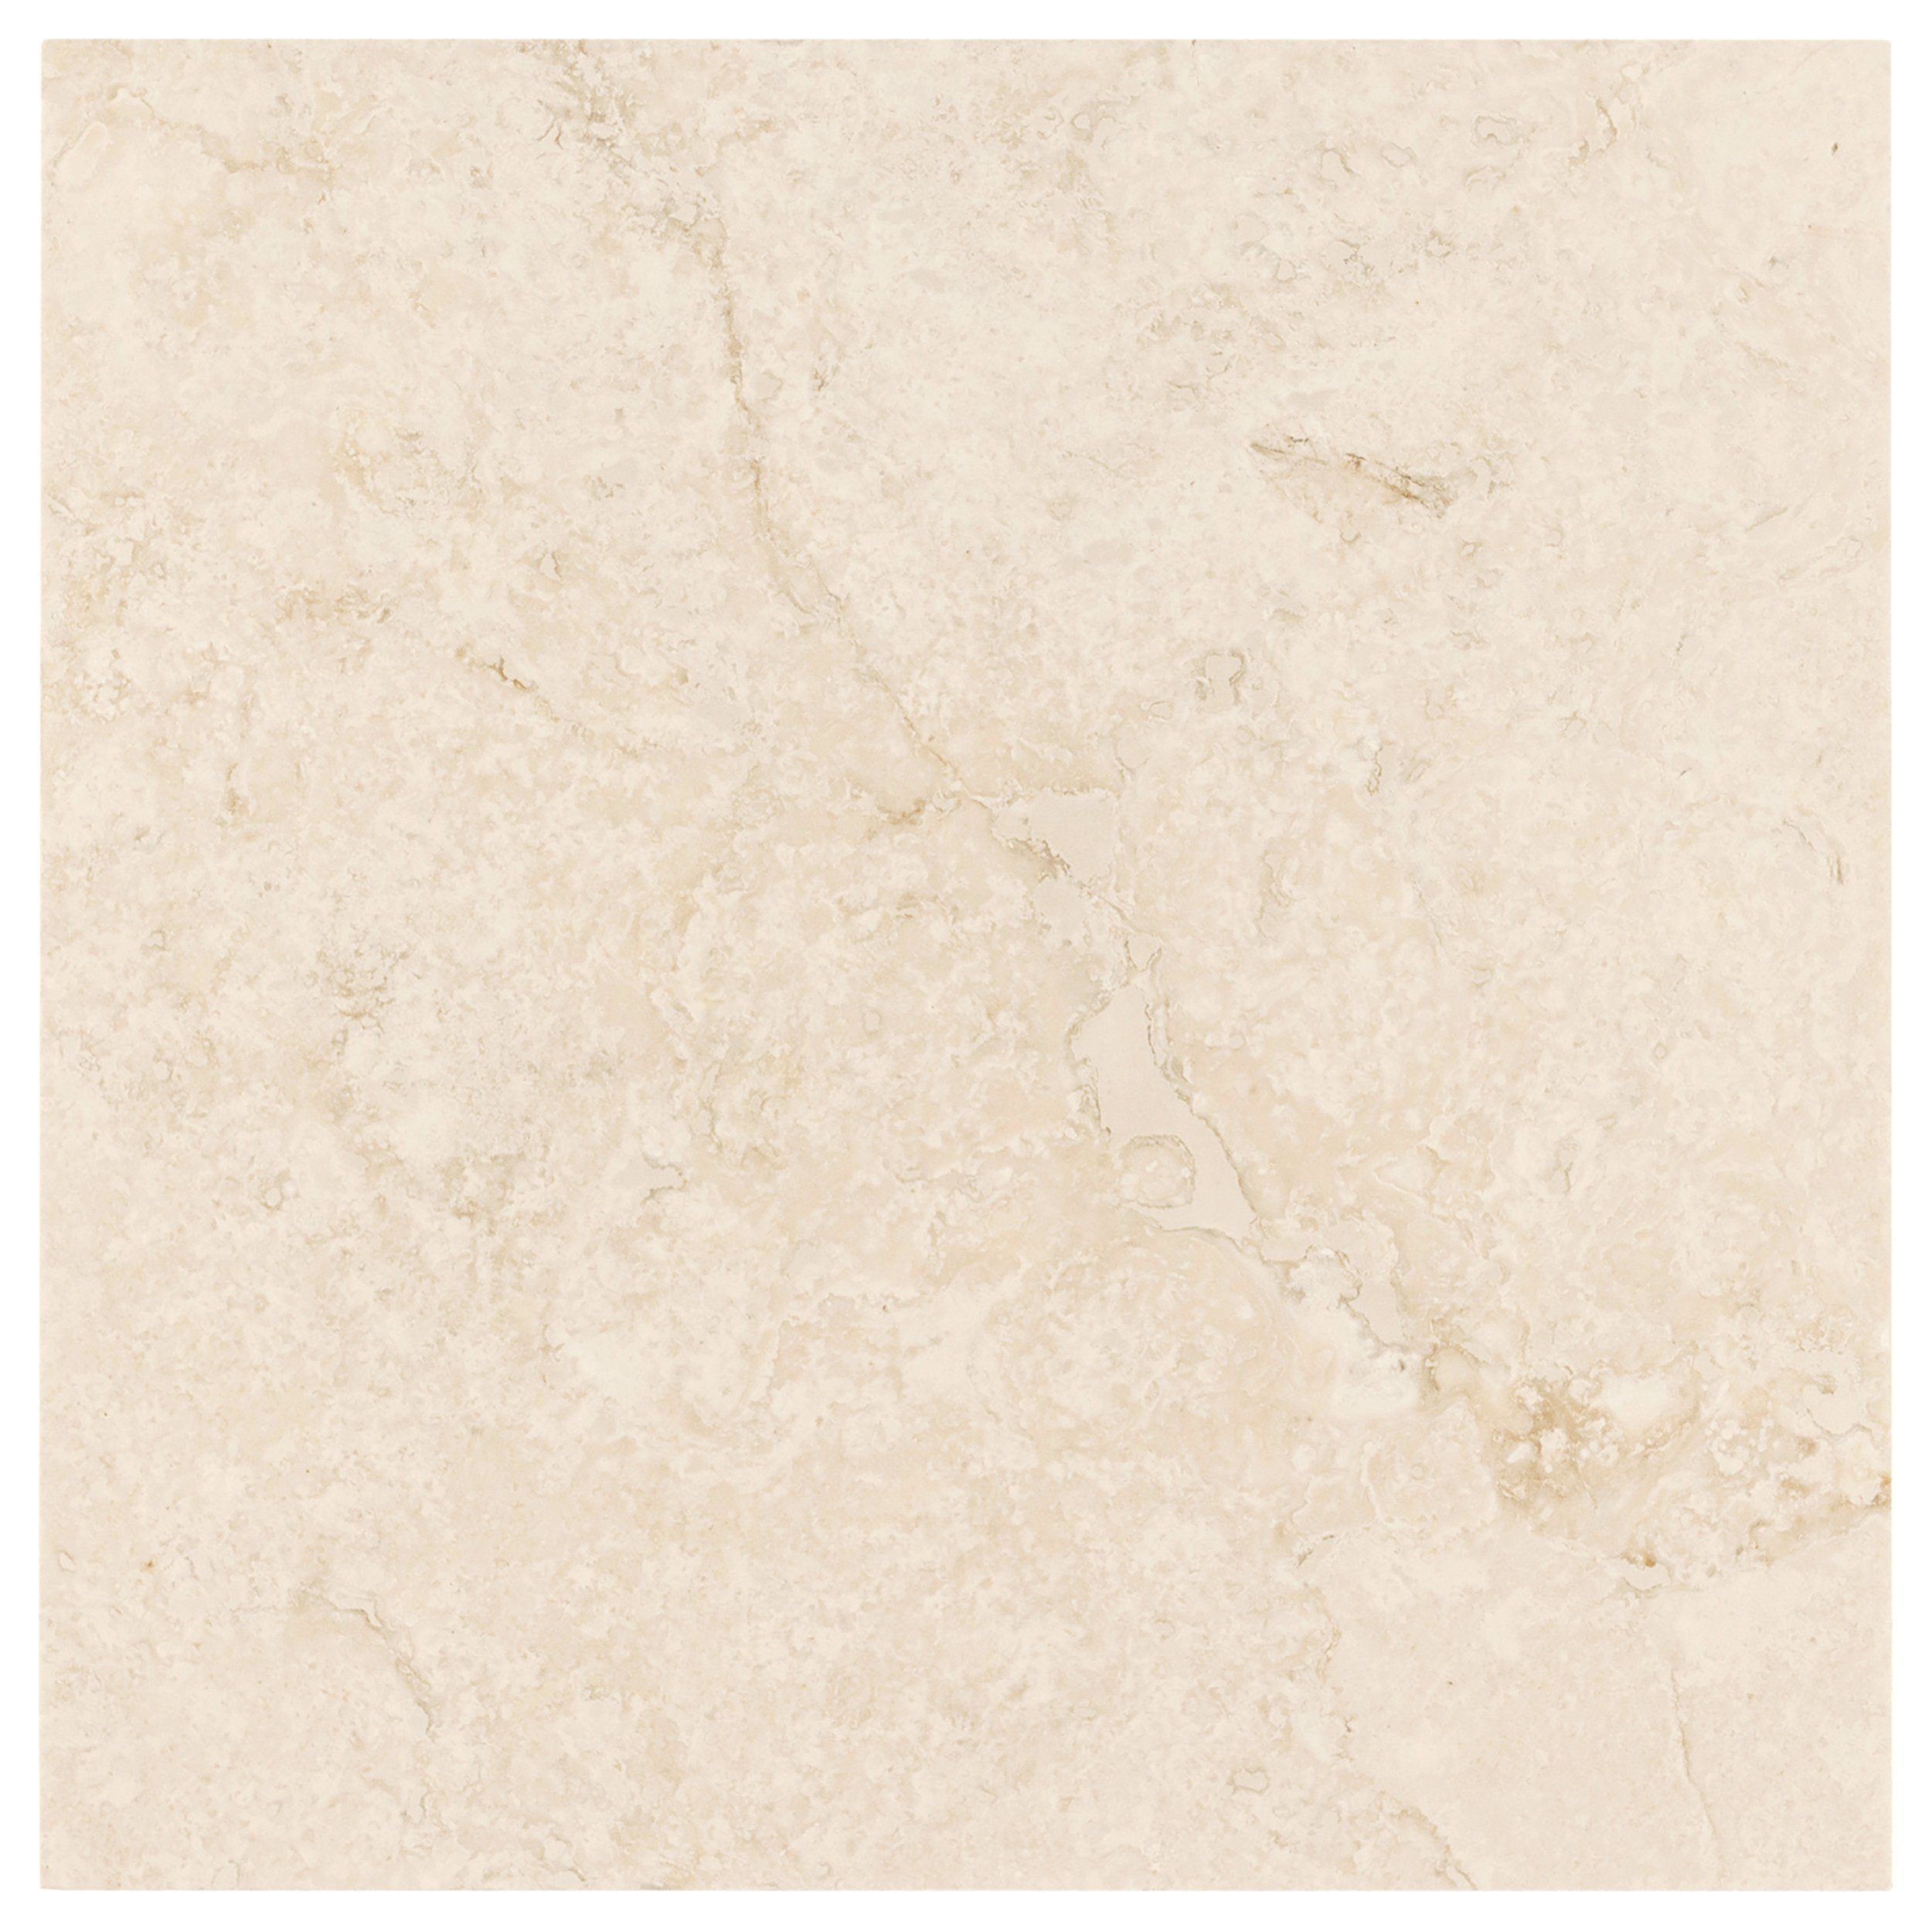 Cote dazur savona ivory honed travertine tile